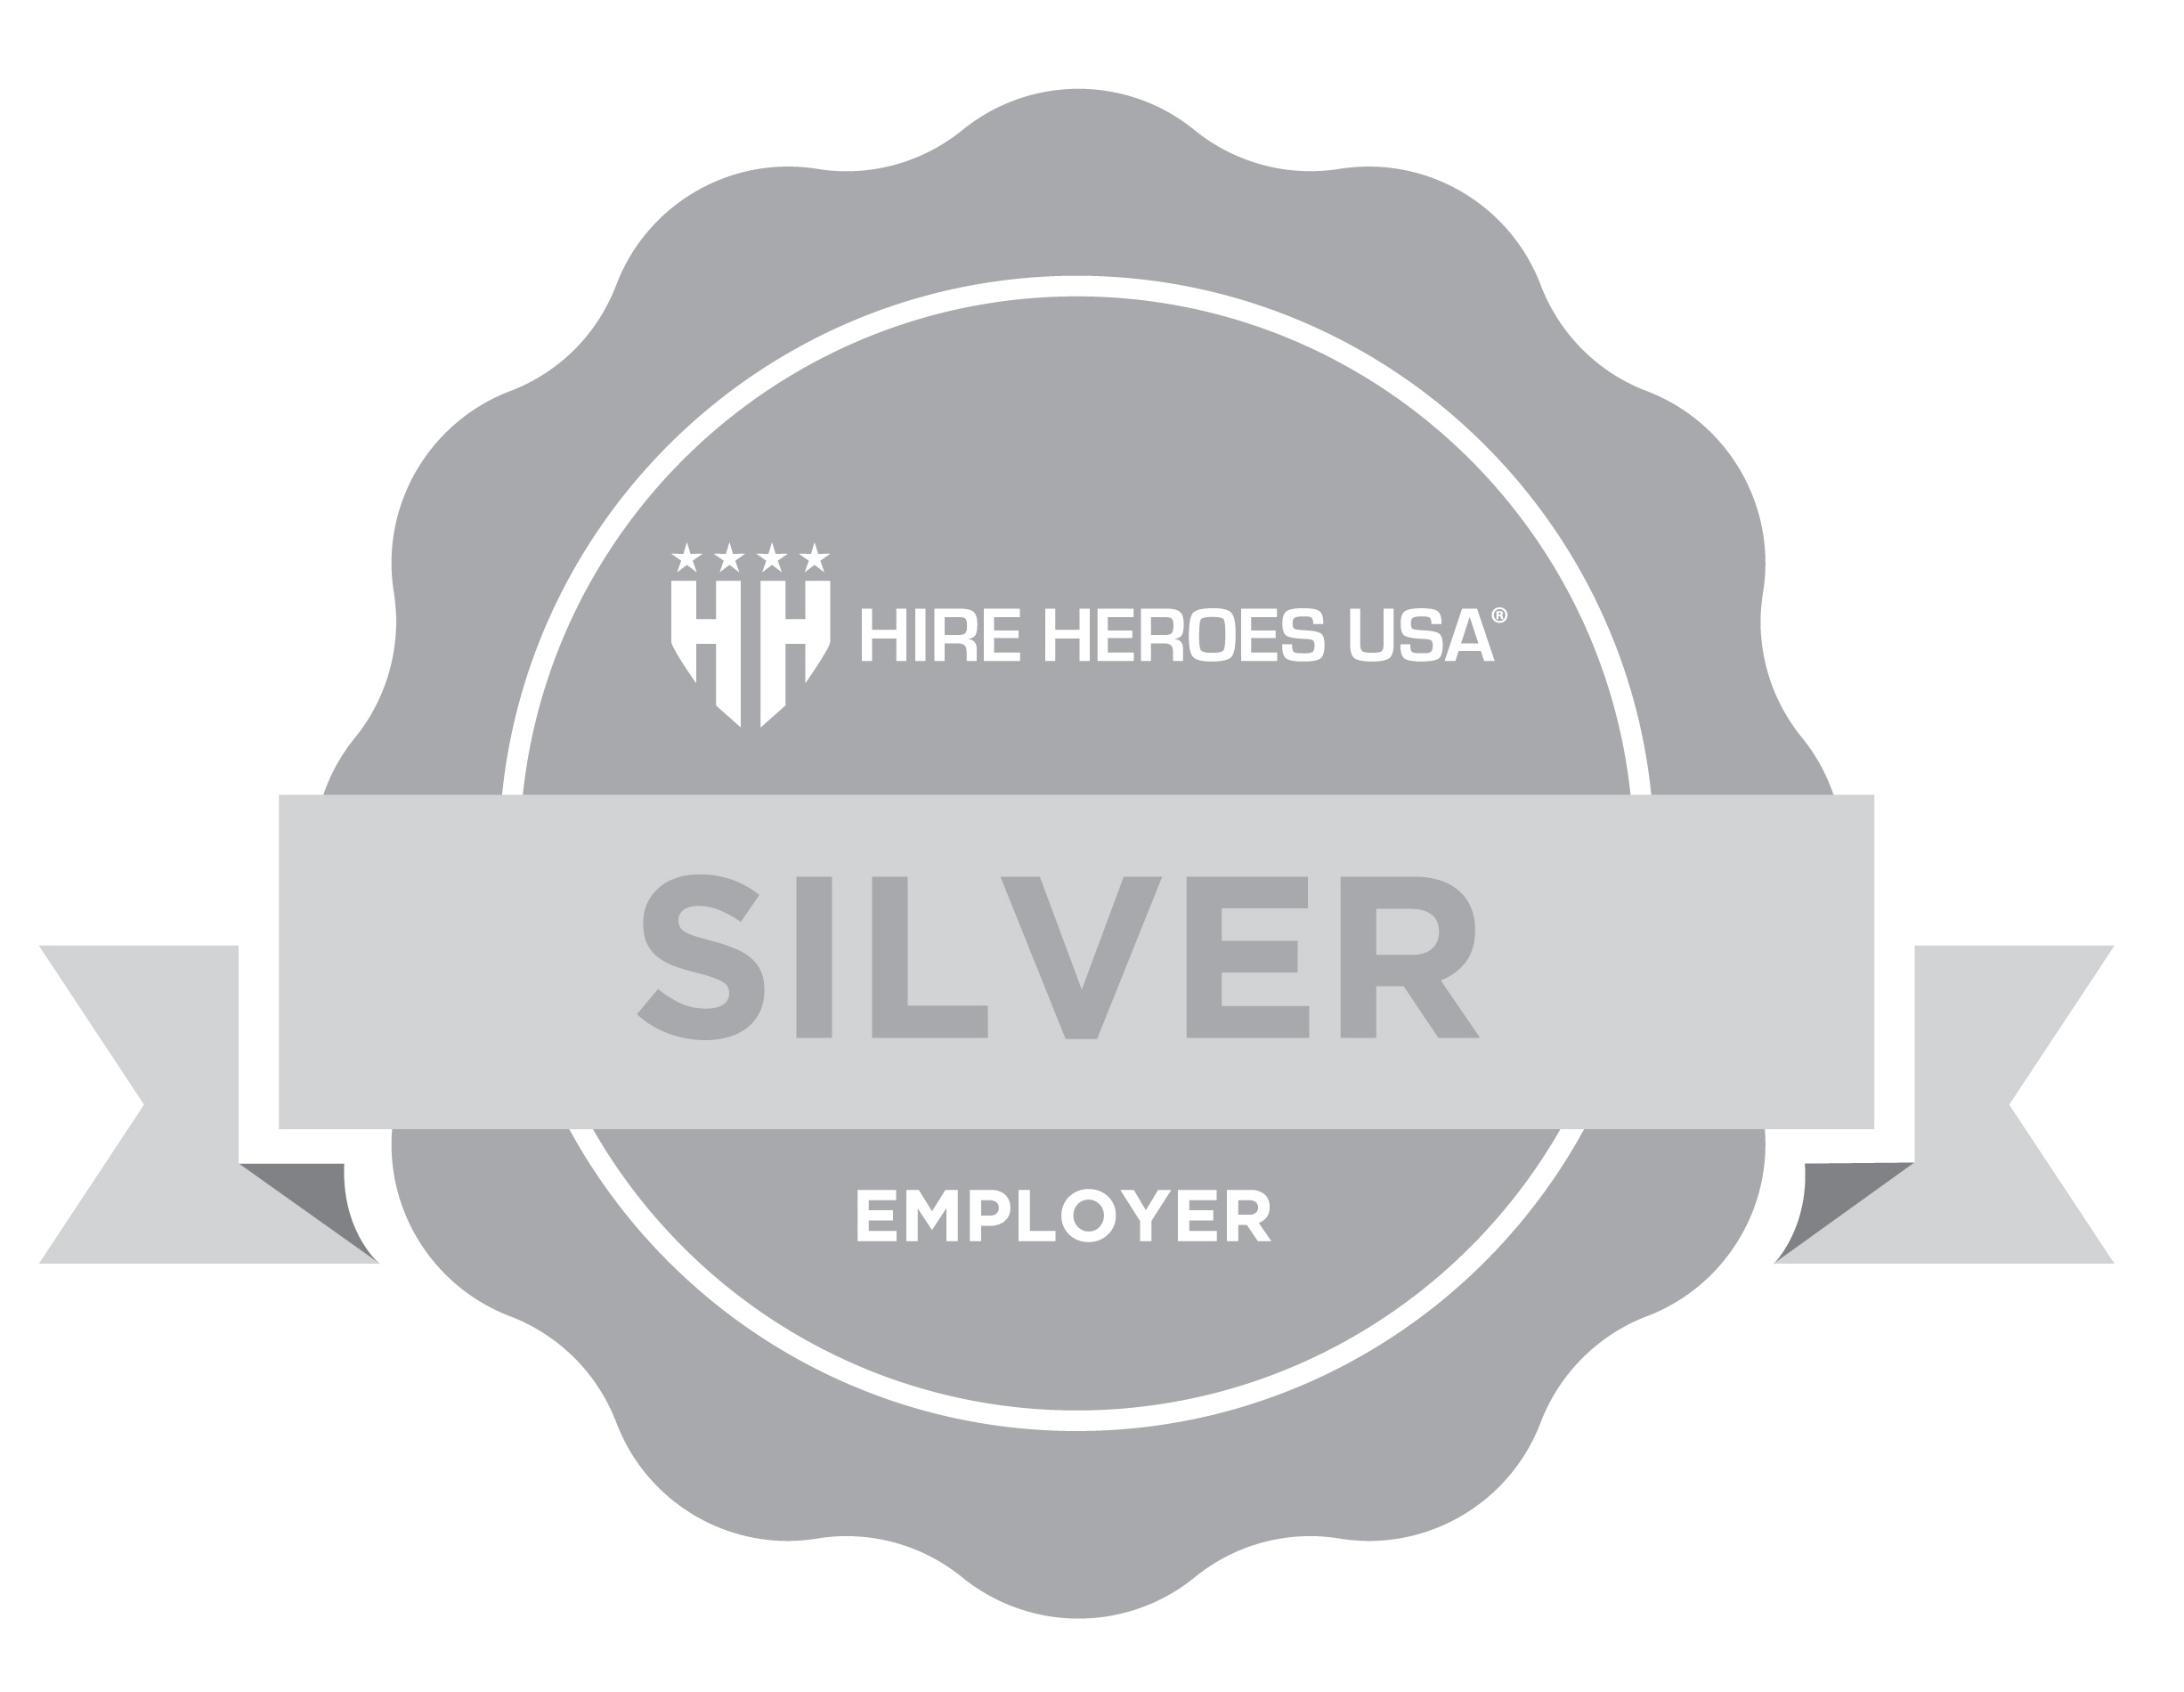 hireheroessilveremployerbadge